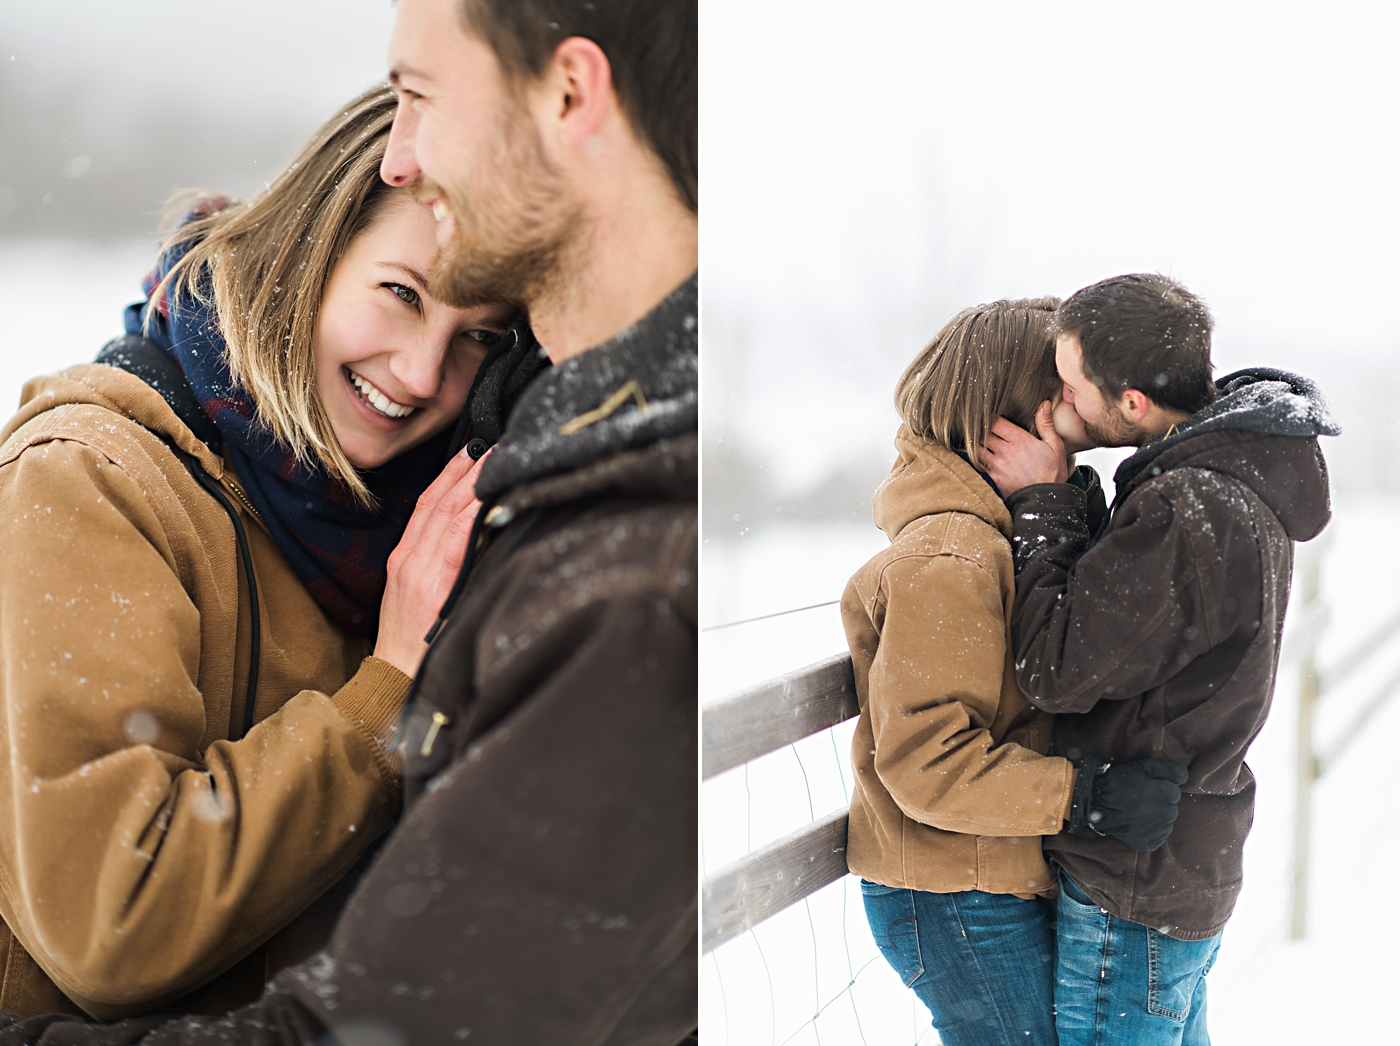 Candace-Berry-Photography-Halifax-Wedding-Photographer-Valley-Engagement_Emily&Macall10.jpeg